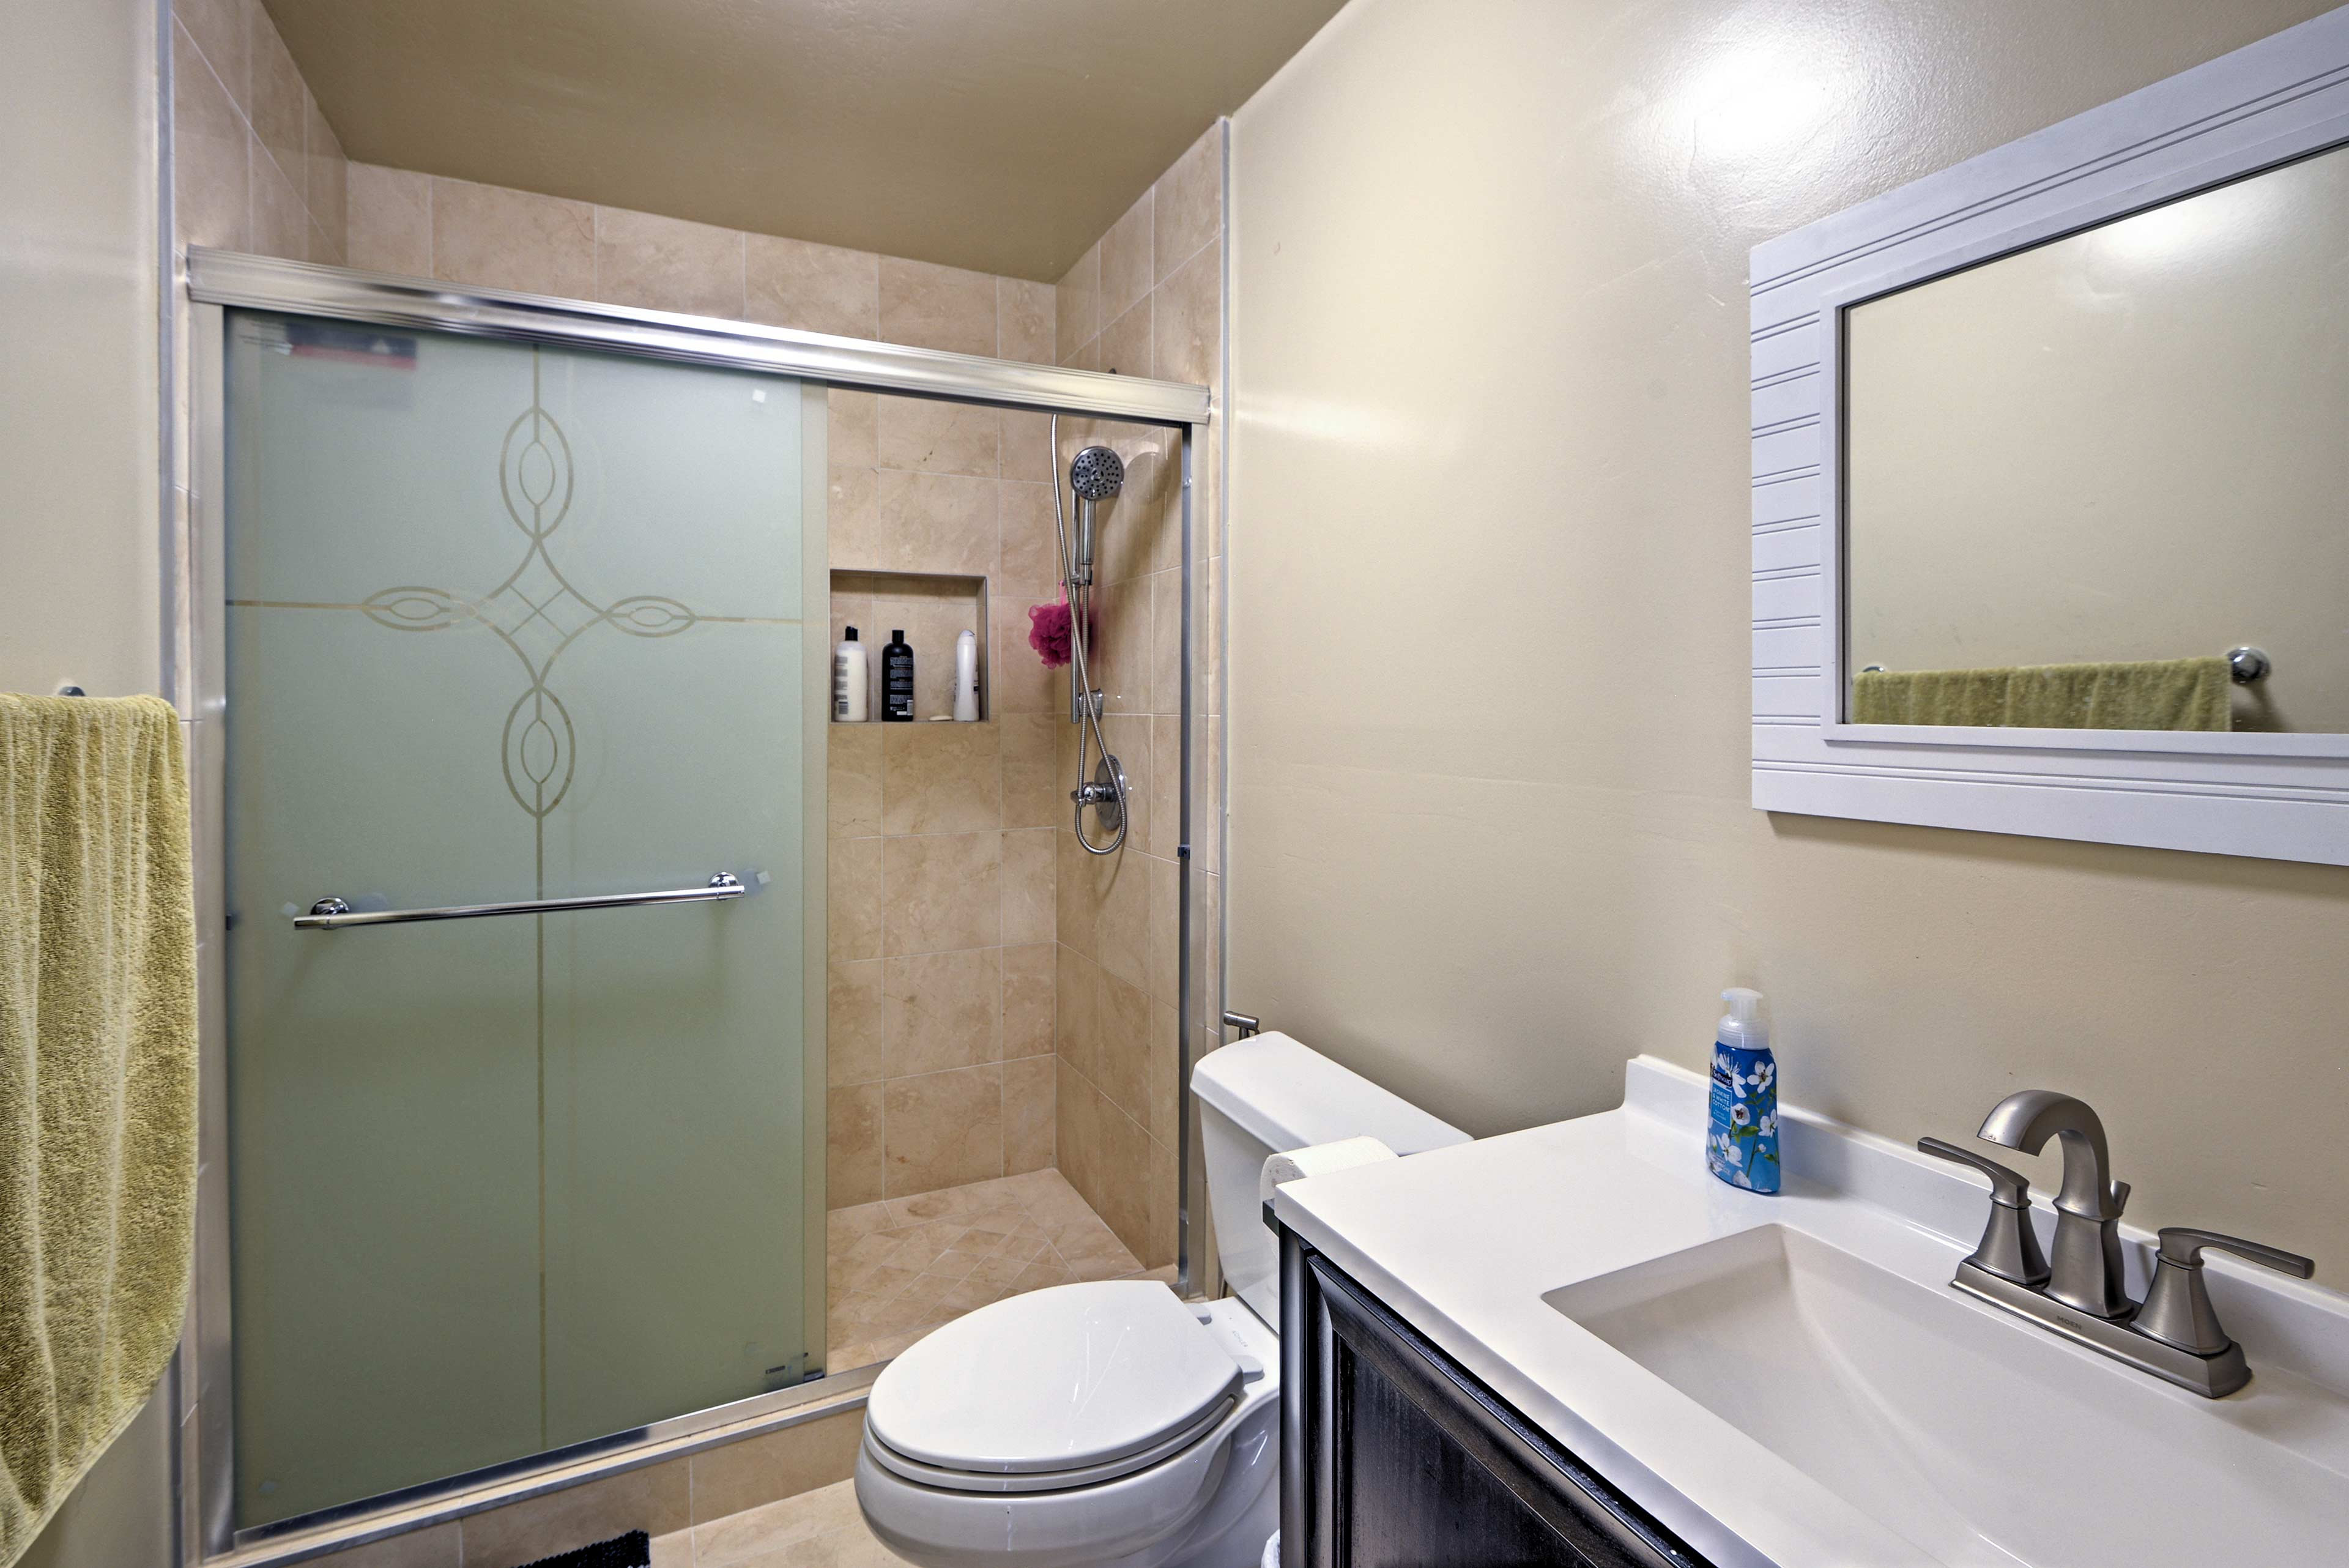 Get ready for a night out in the walk-in shower.